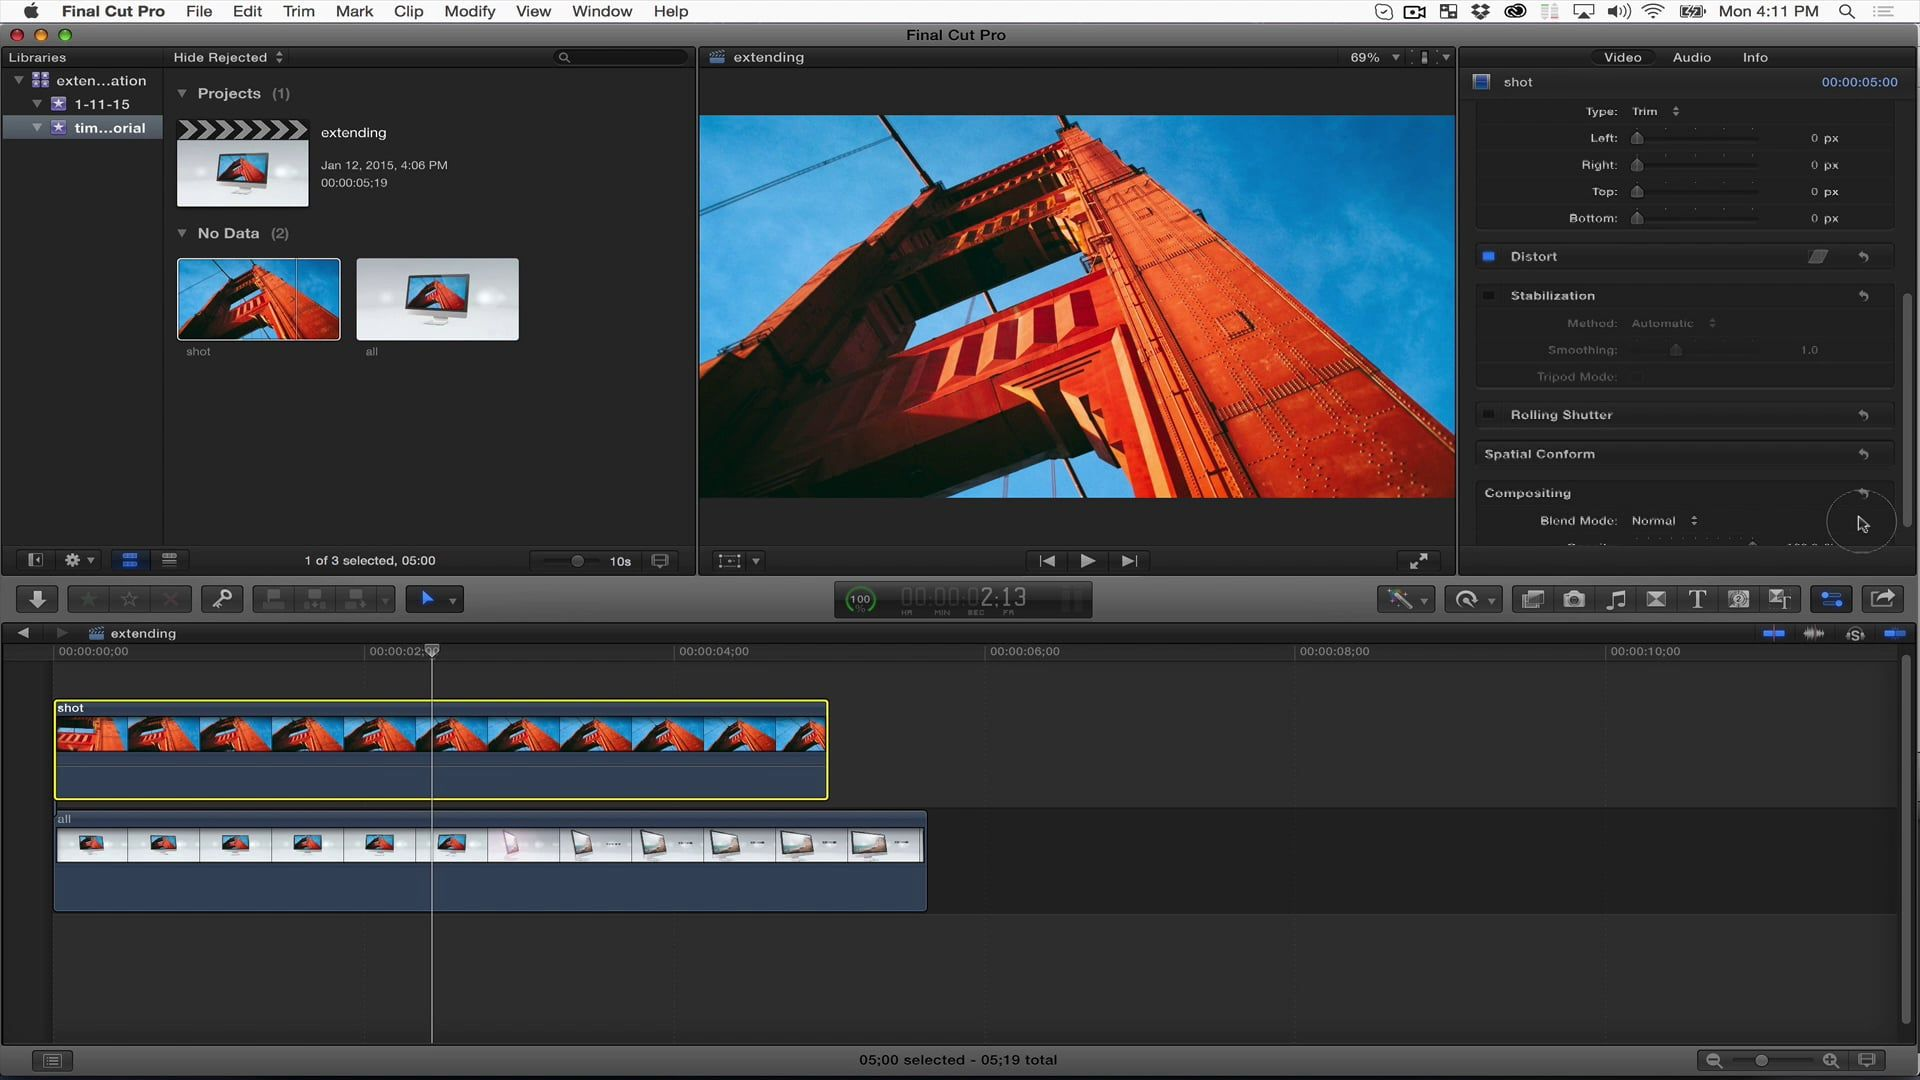 Editing Techniques To Extend The Duration Of After Effects Templates - After effects template editing